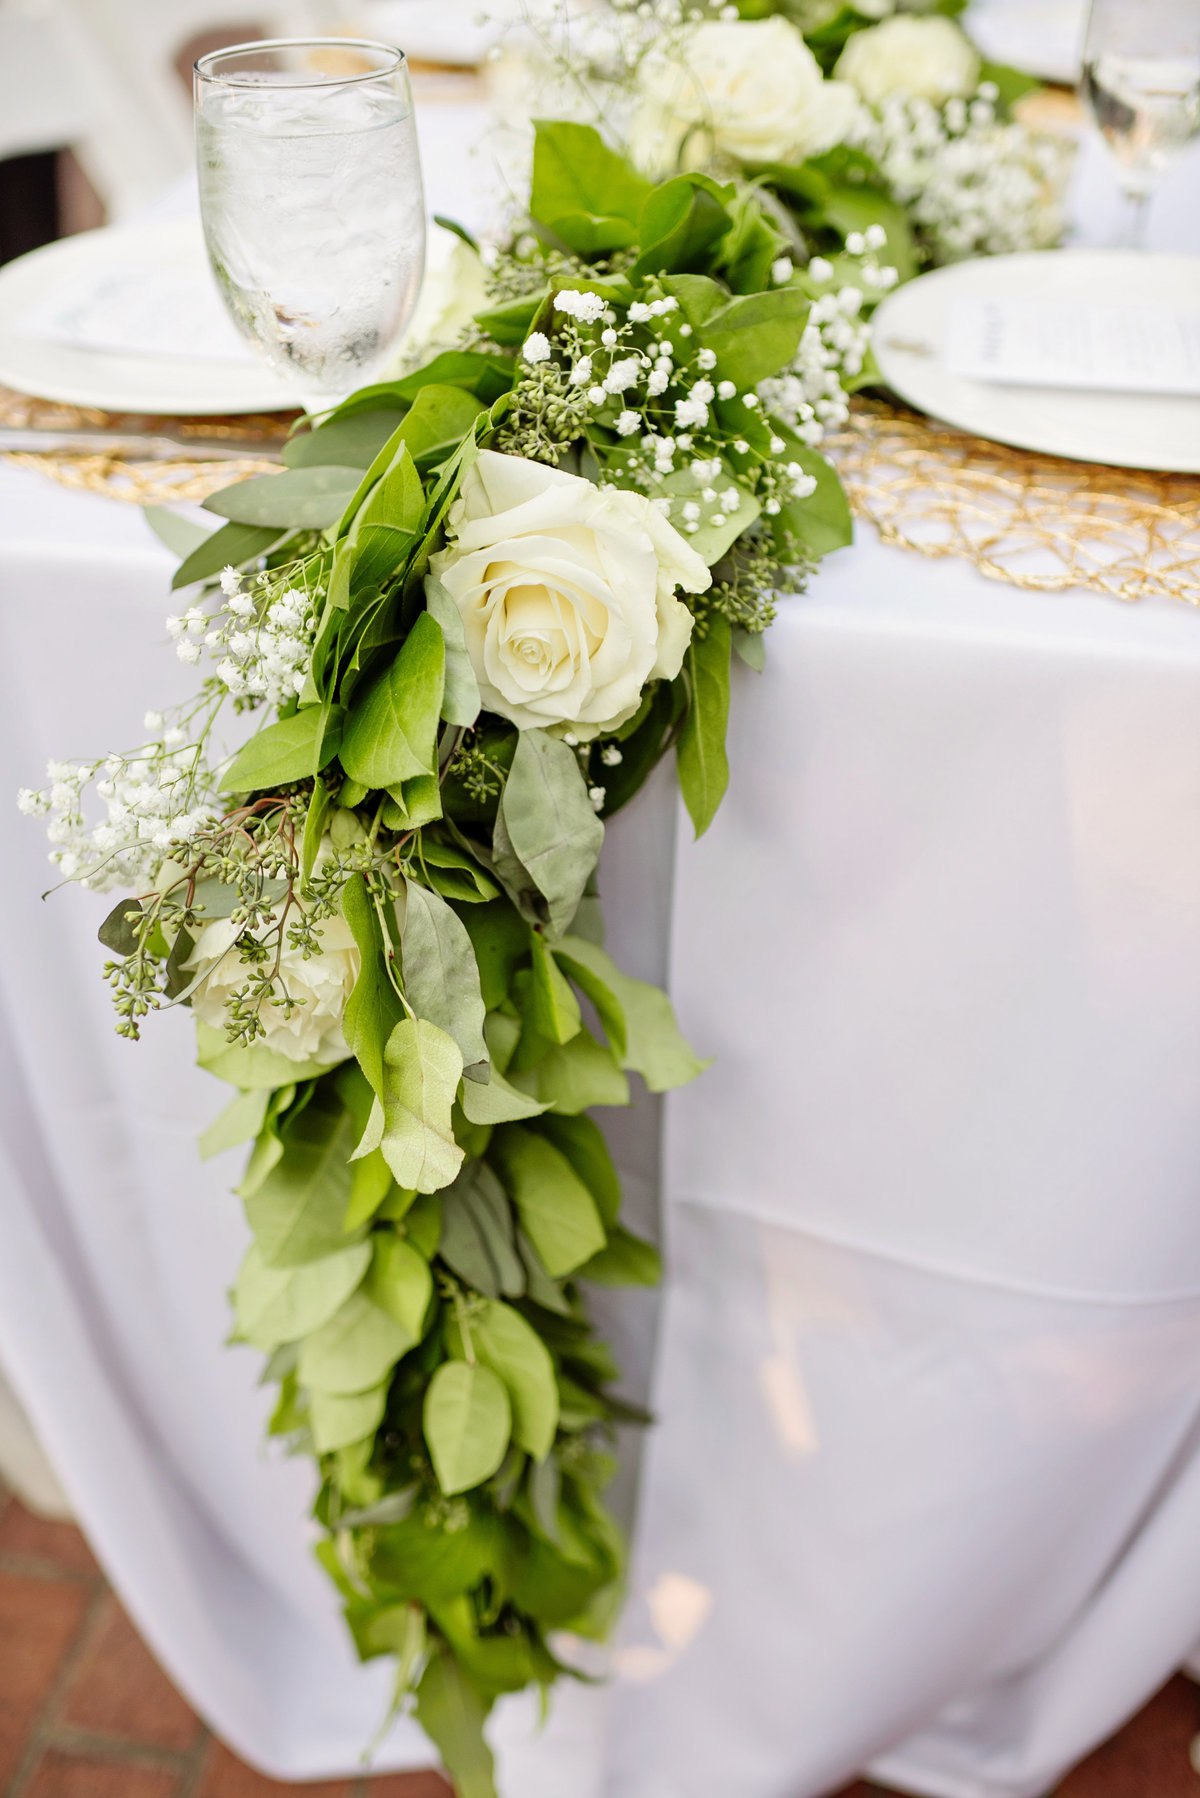 greenery table setting at wedding reception